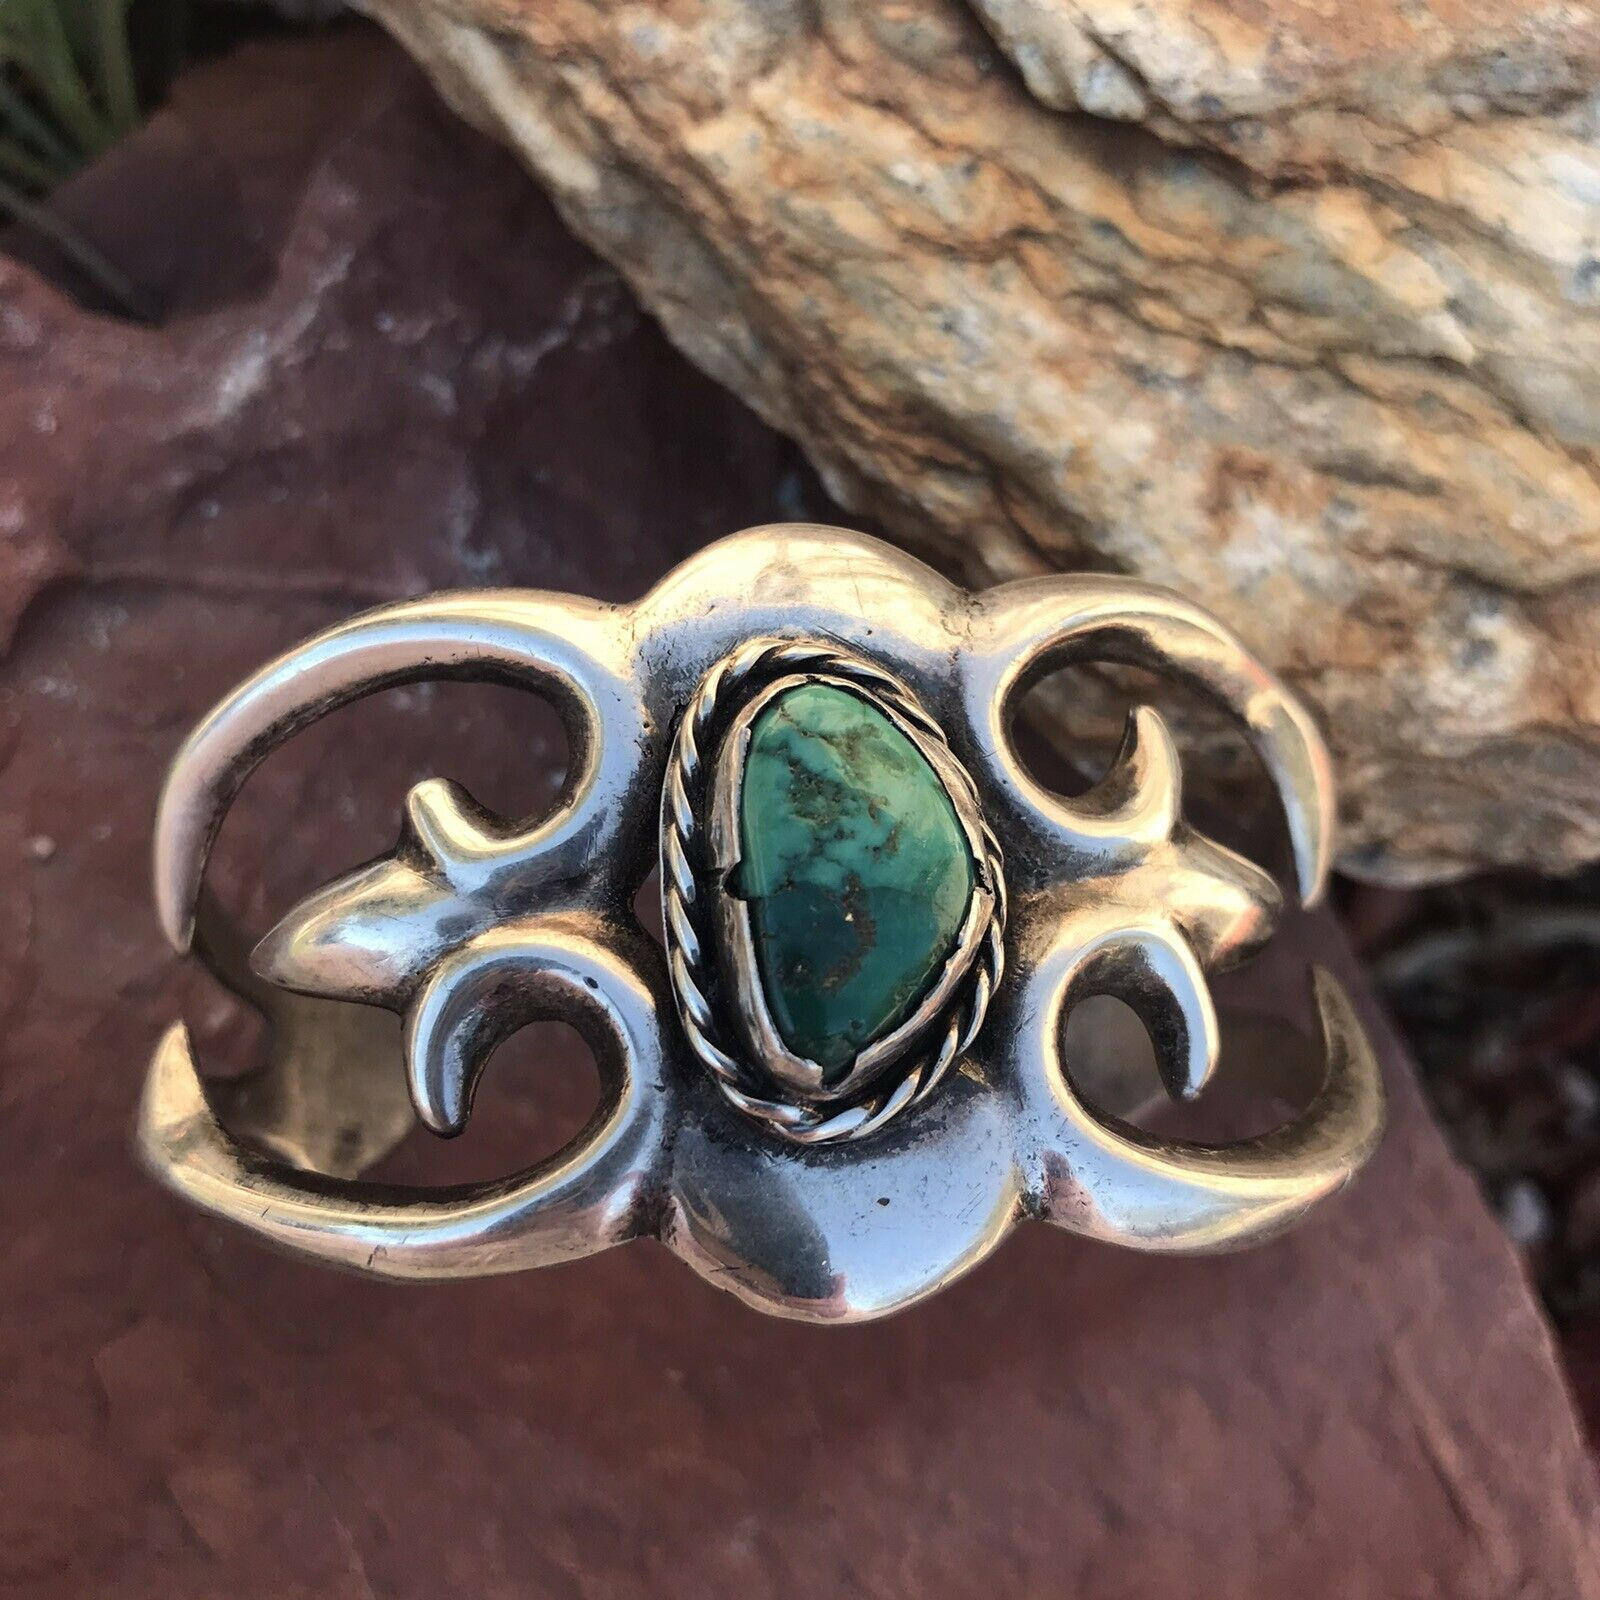 Gorgeous Vintage Turquoise And Sterling Silver Cuff Bracelet